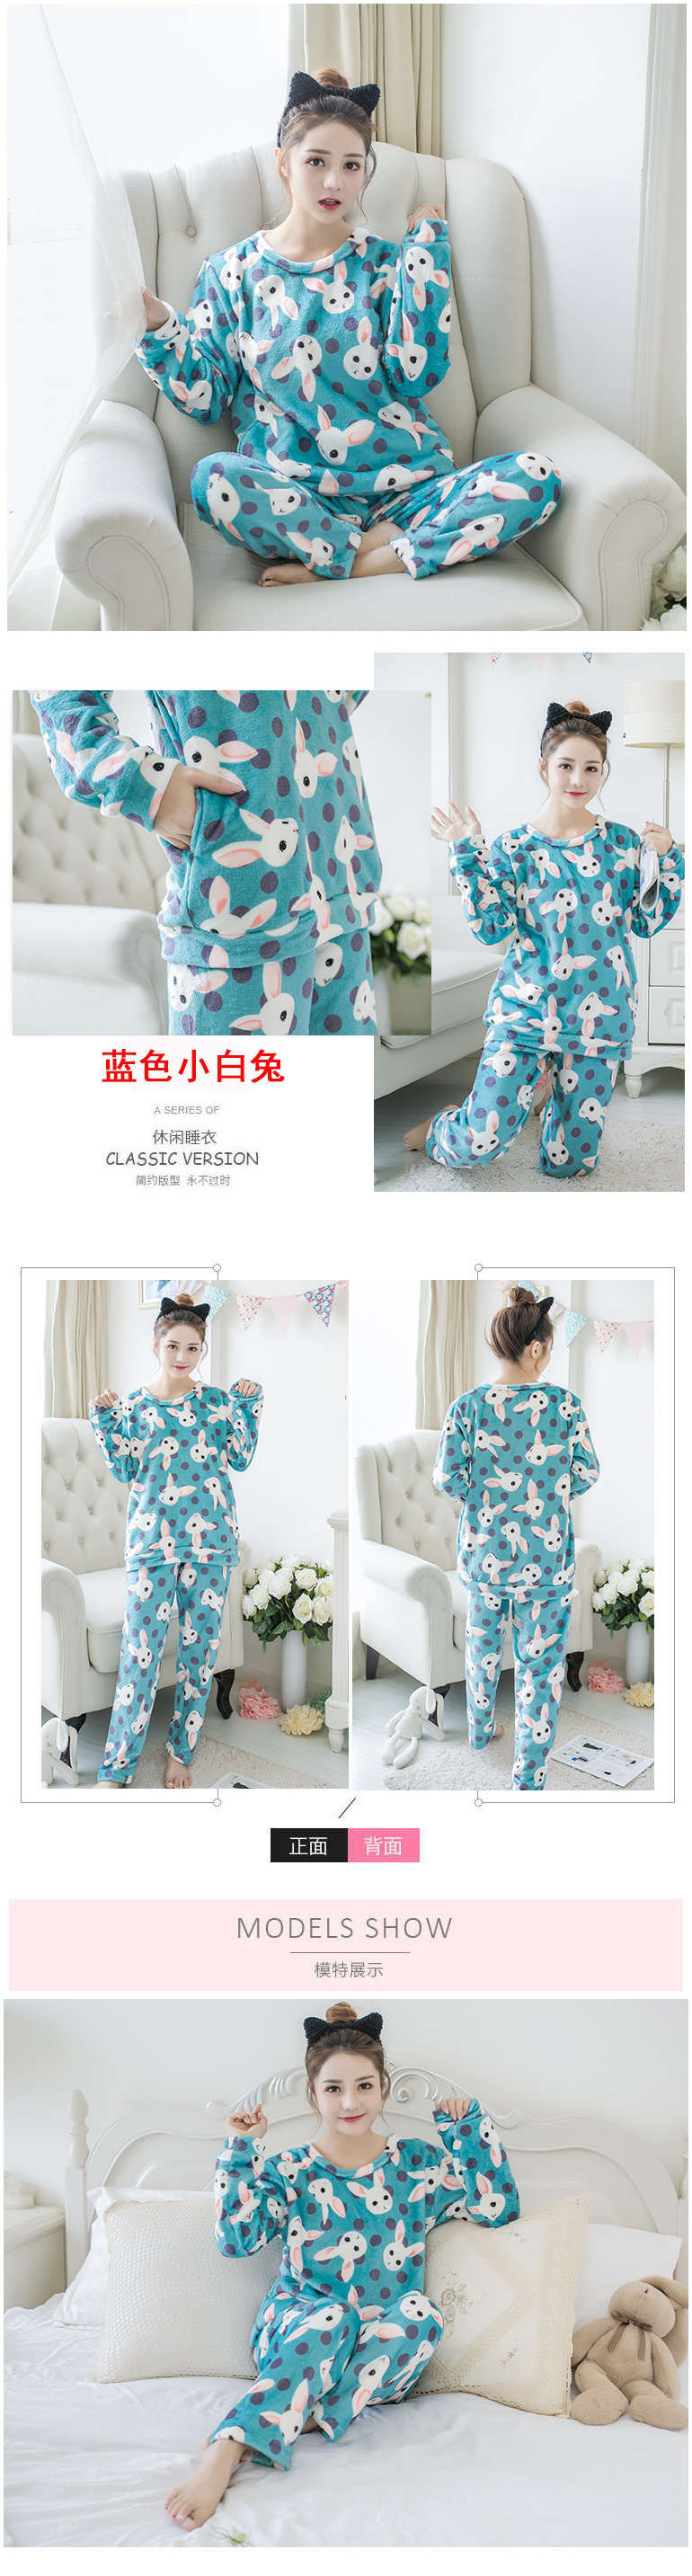 Betyline 2019 New Winter Pajamas For Women Sleepwear Warm Flannel Long Sleeves Pajamas Cute Animal Homewear Thick Homewear 182